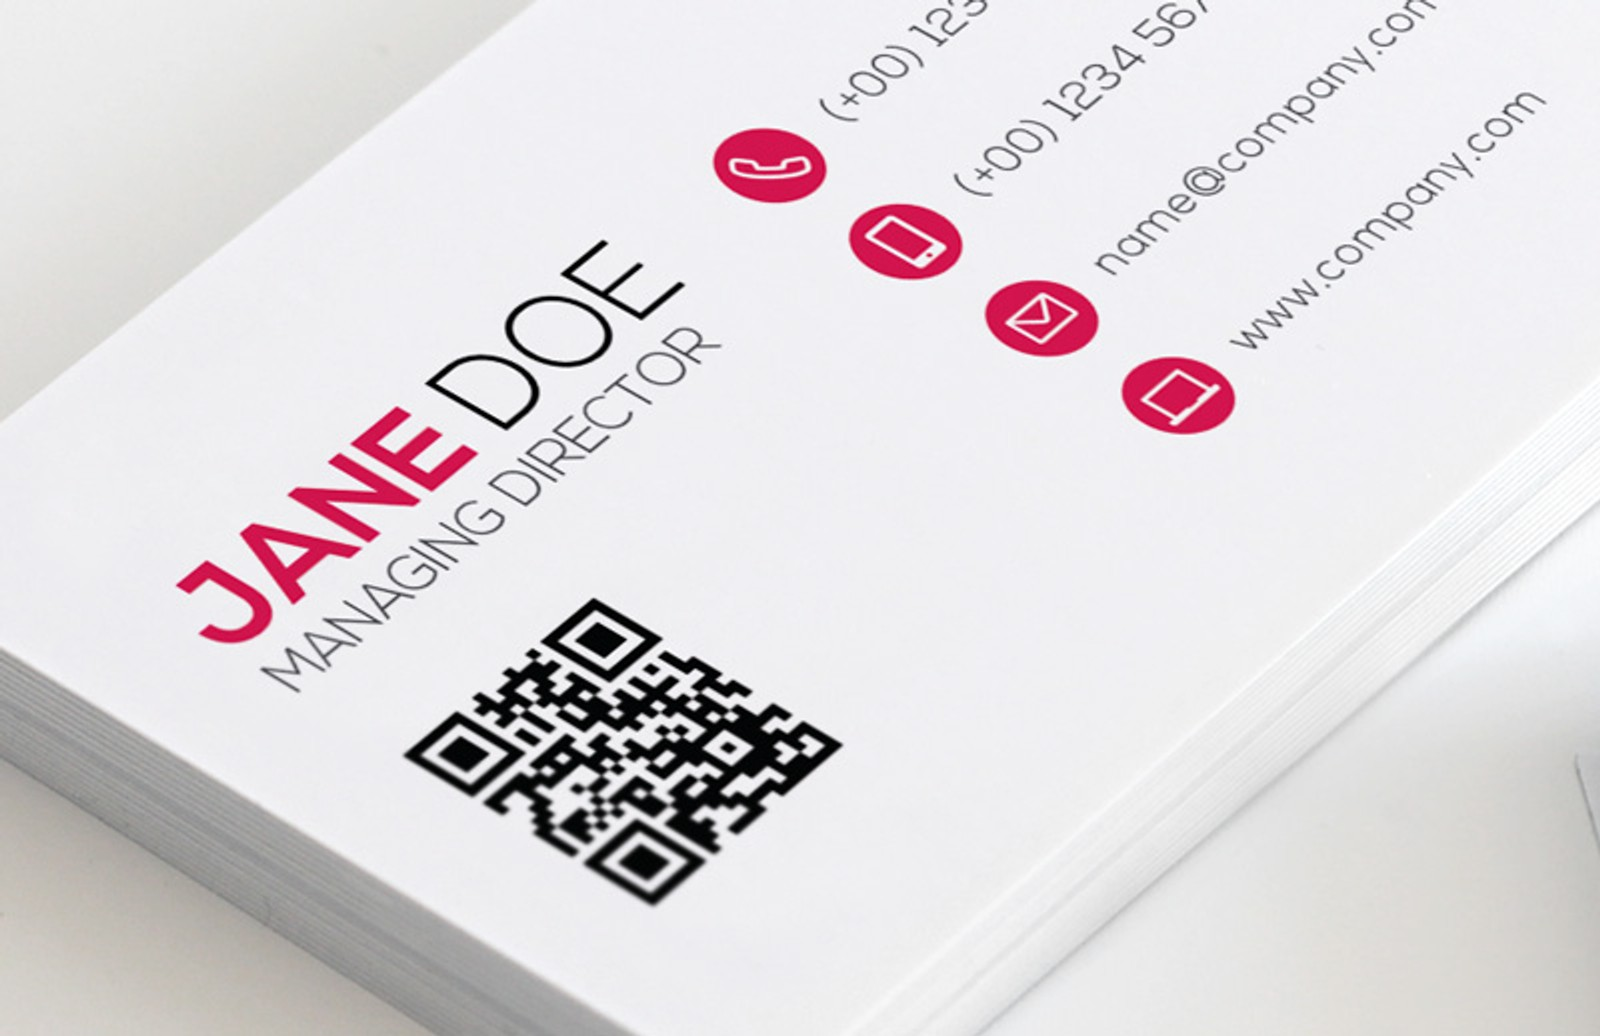 Qr code business card template vol 2 medialoot qr code business card vol 2 preview 1 wajeb Gallery